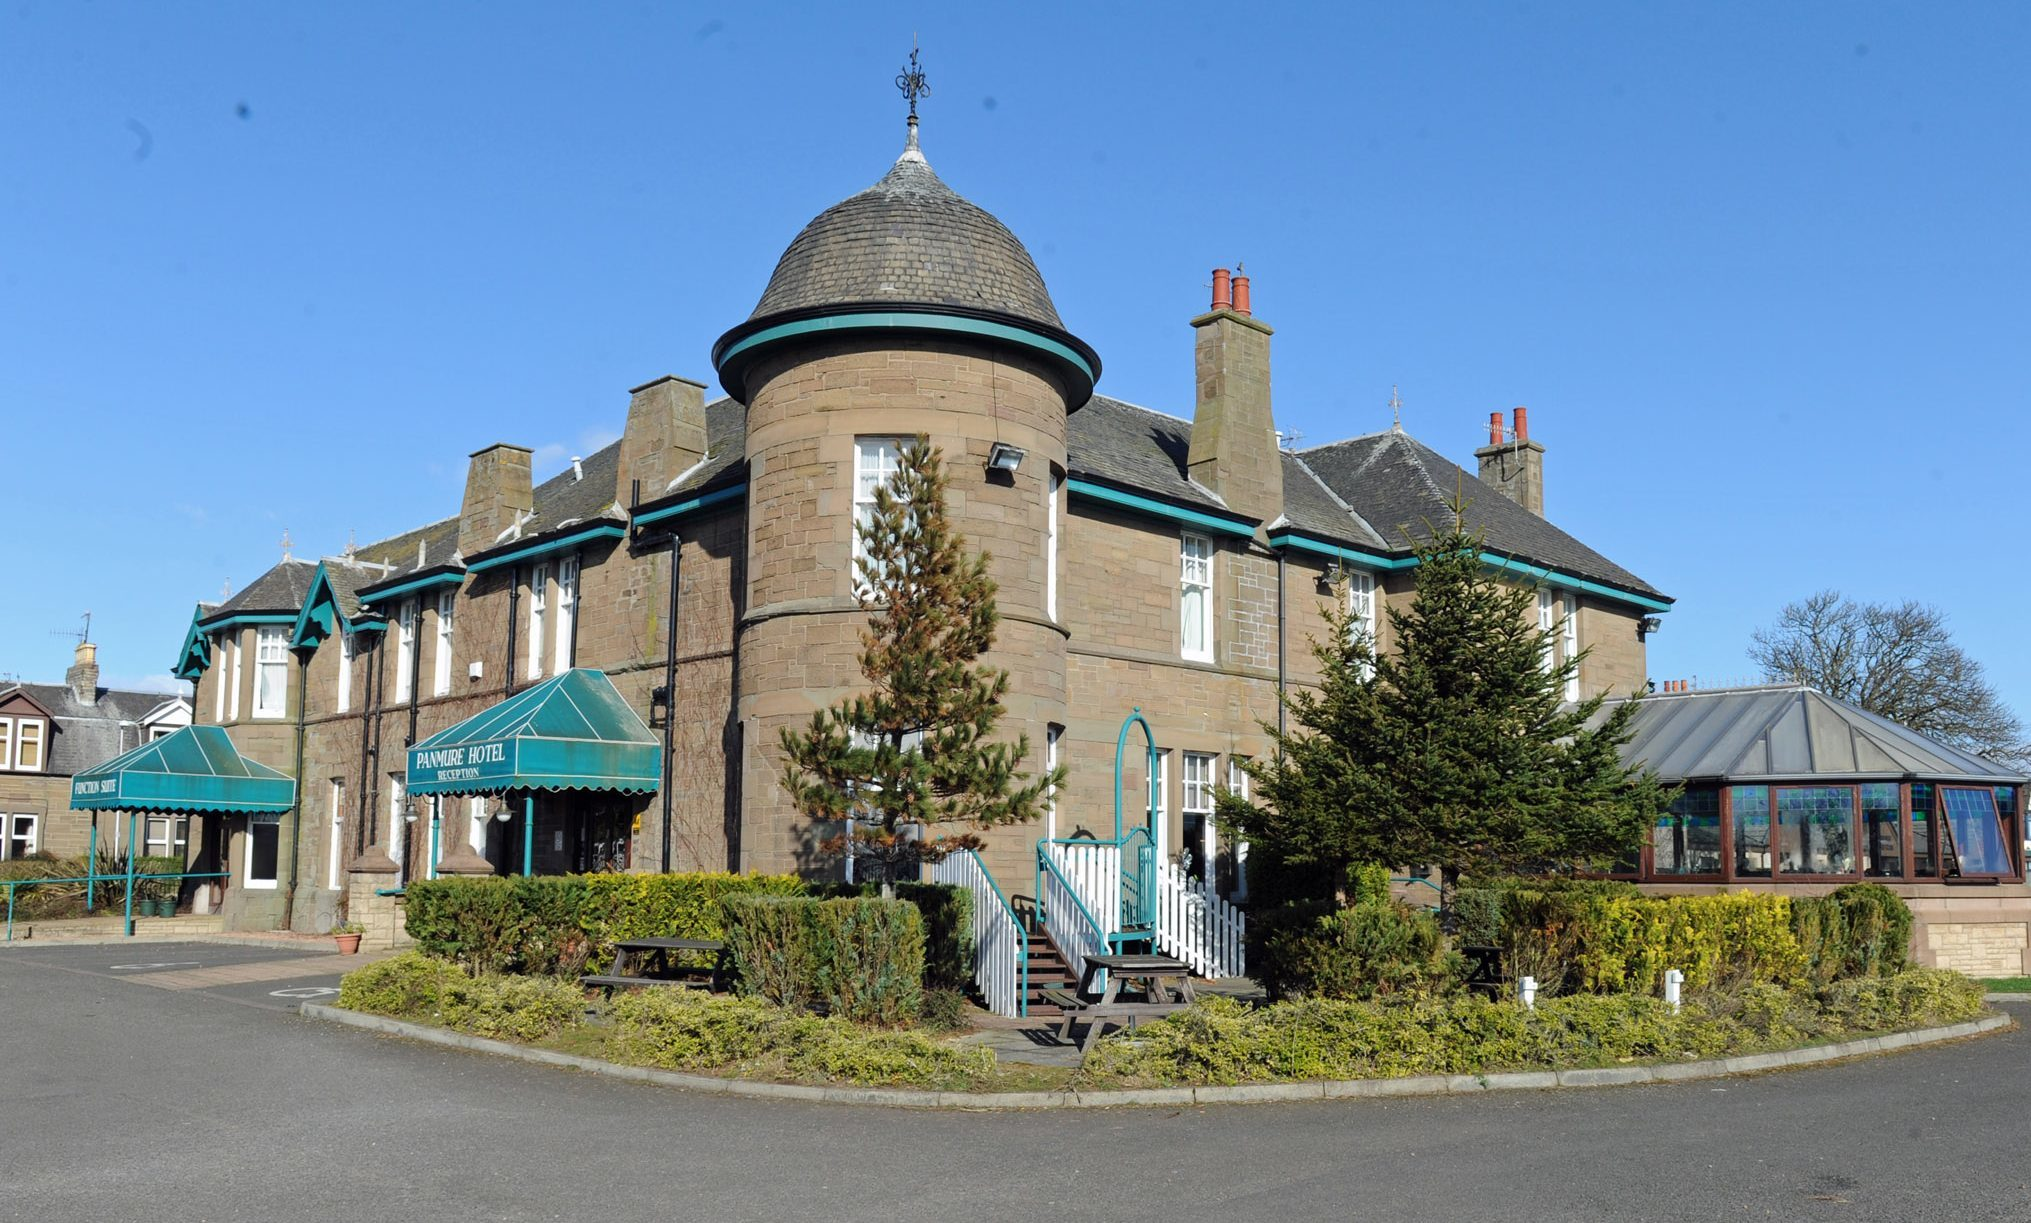 The Panmure Hotel in Monifieth.